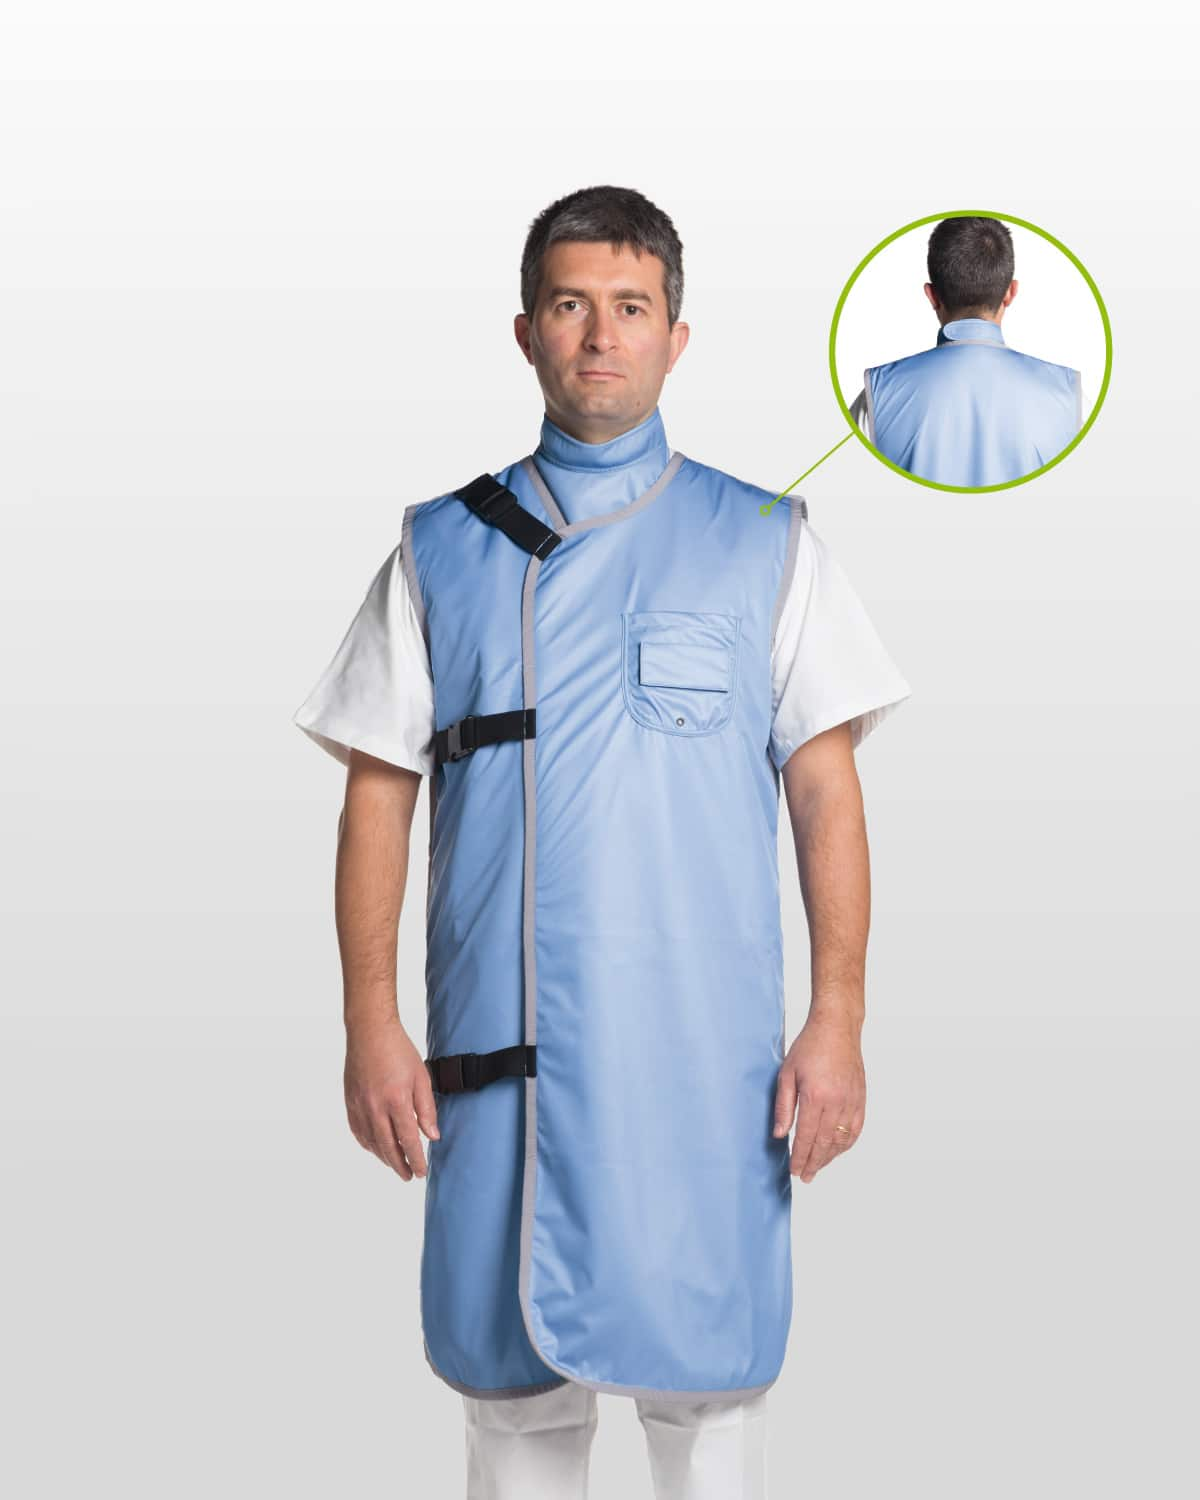 X ray protective apron | X-VERSUS - RX-Protective Clothing System